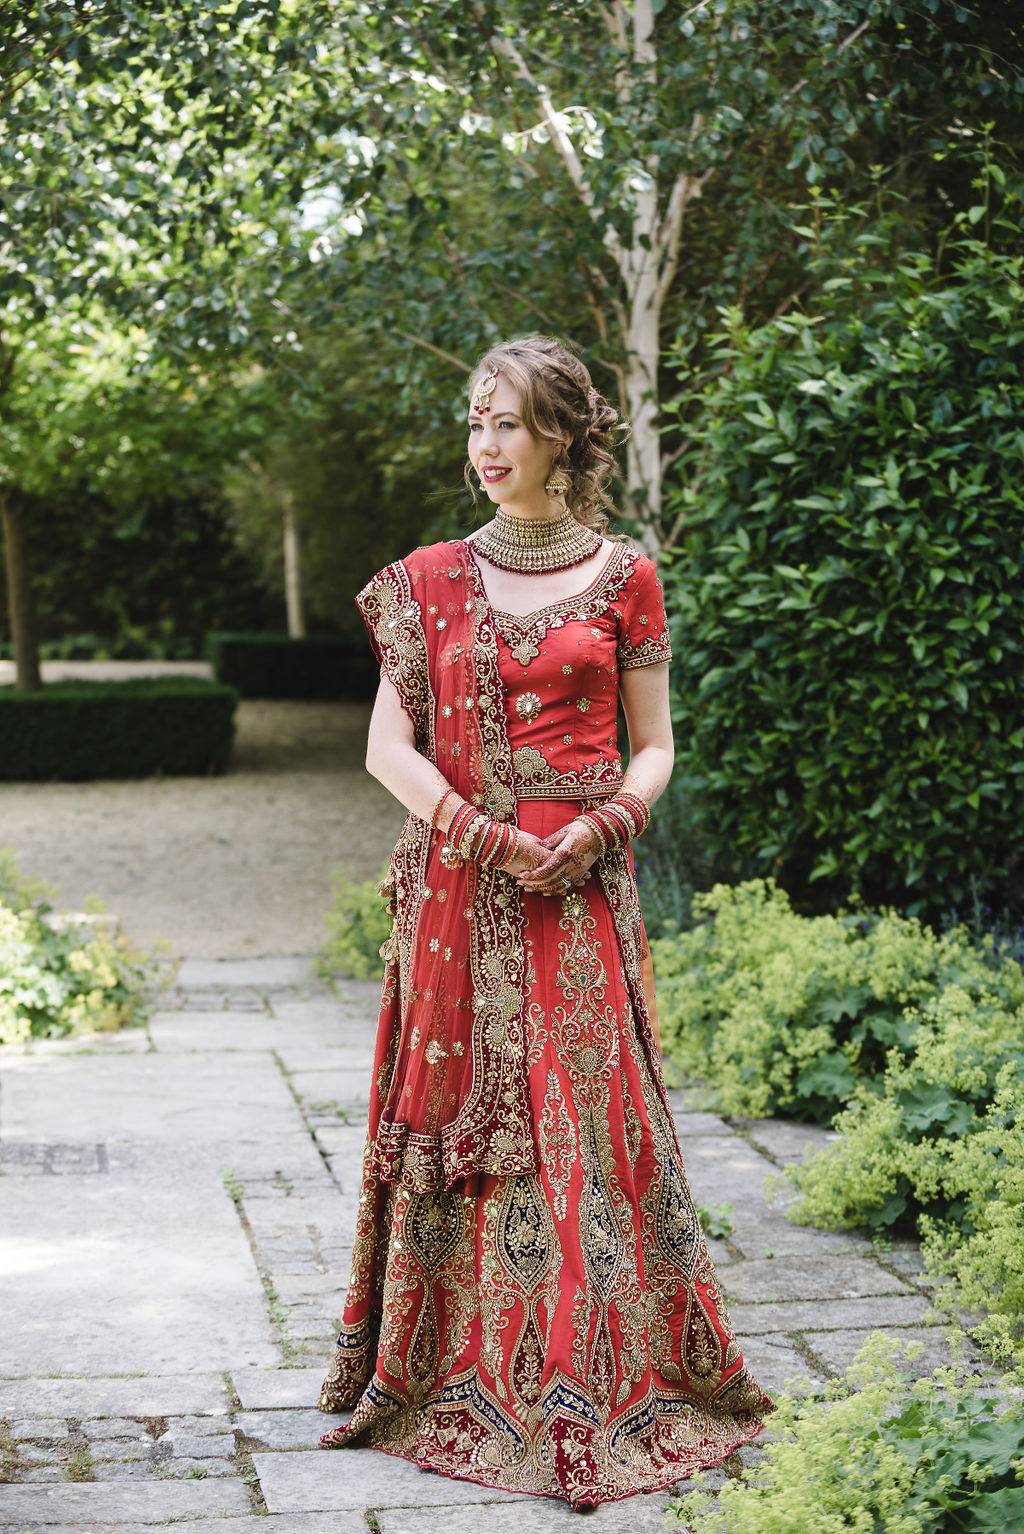 Indian wedding, Indian wedding dress, red wedding dress, bride, henna, axnoller wedding, dorset, hampshire